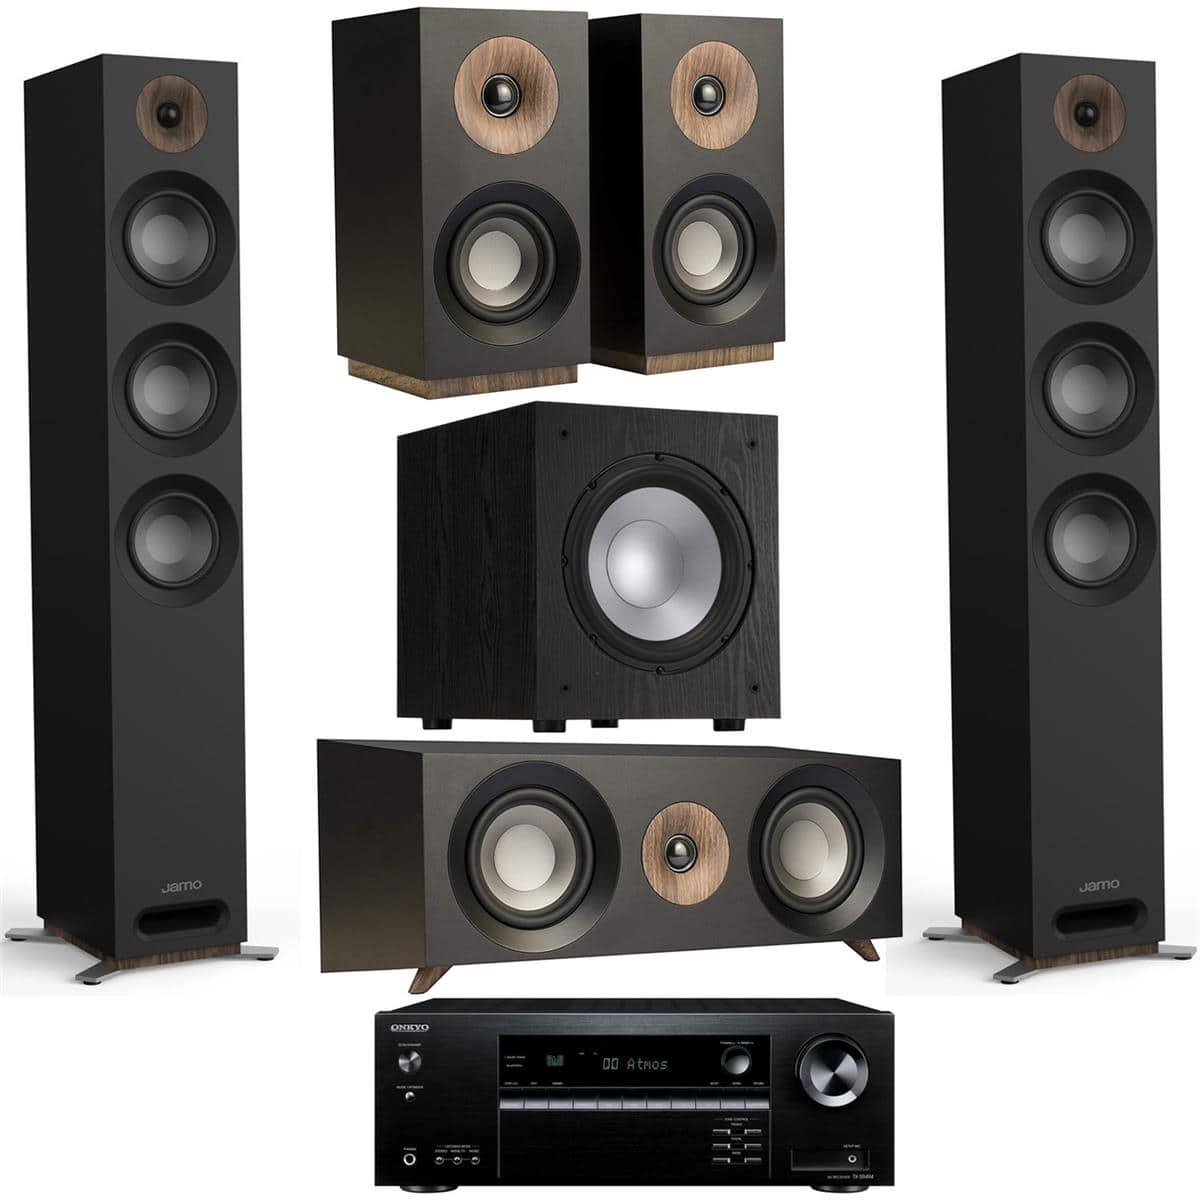 Jamo Speakers: Pair S 809 + S 83 Center + Pair S 801 + J 10 Sub + Onkyo TX-SR494